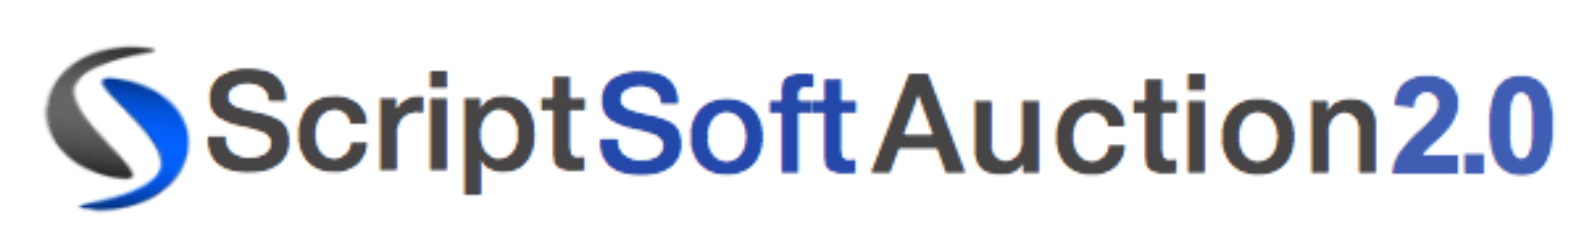 Scriptsoft Auction